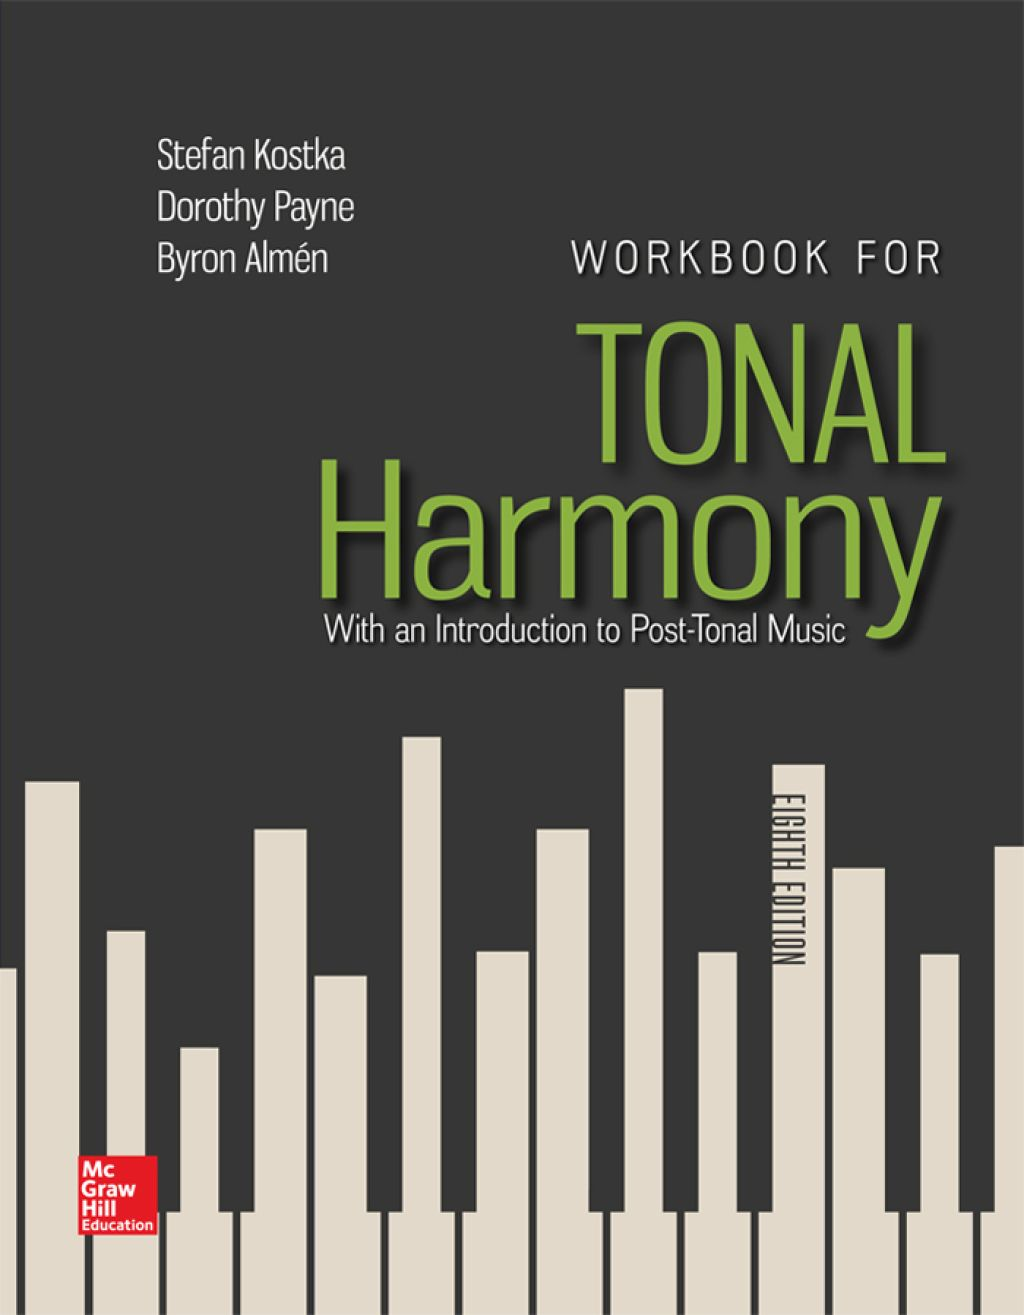 Workbook for Tonal Harmony (eBook Rental) in 2020 | Tonal ...